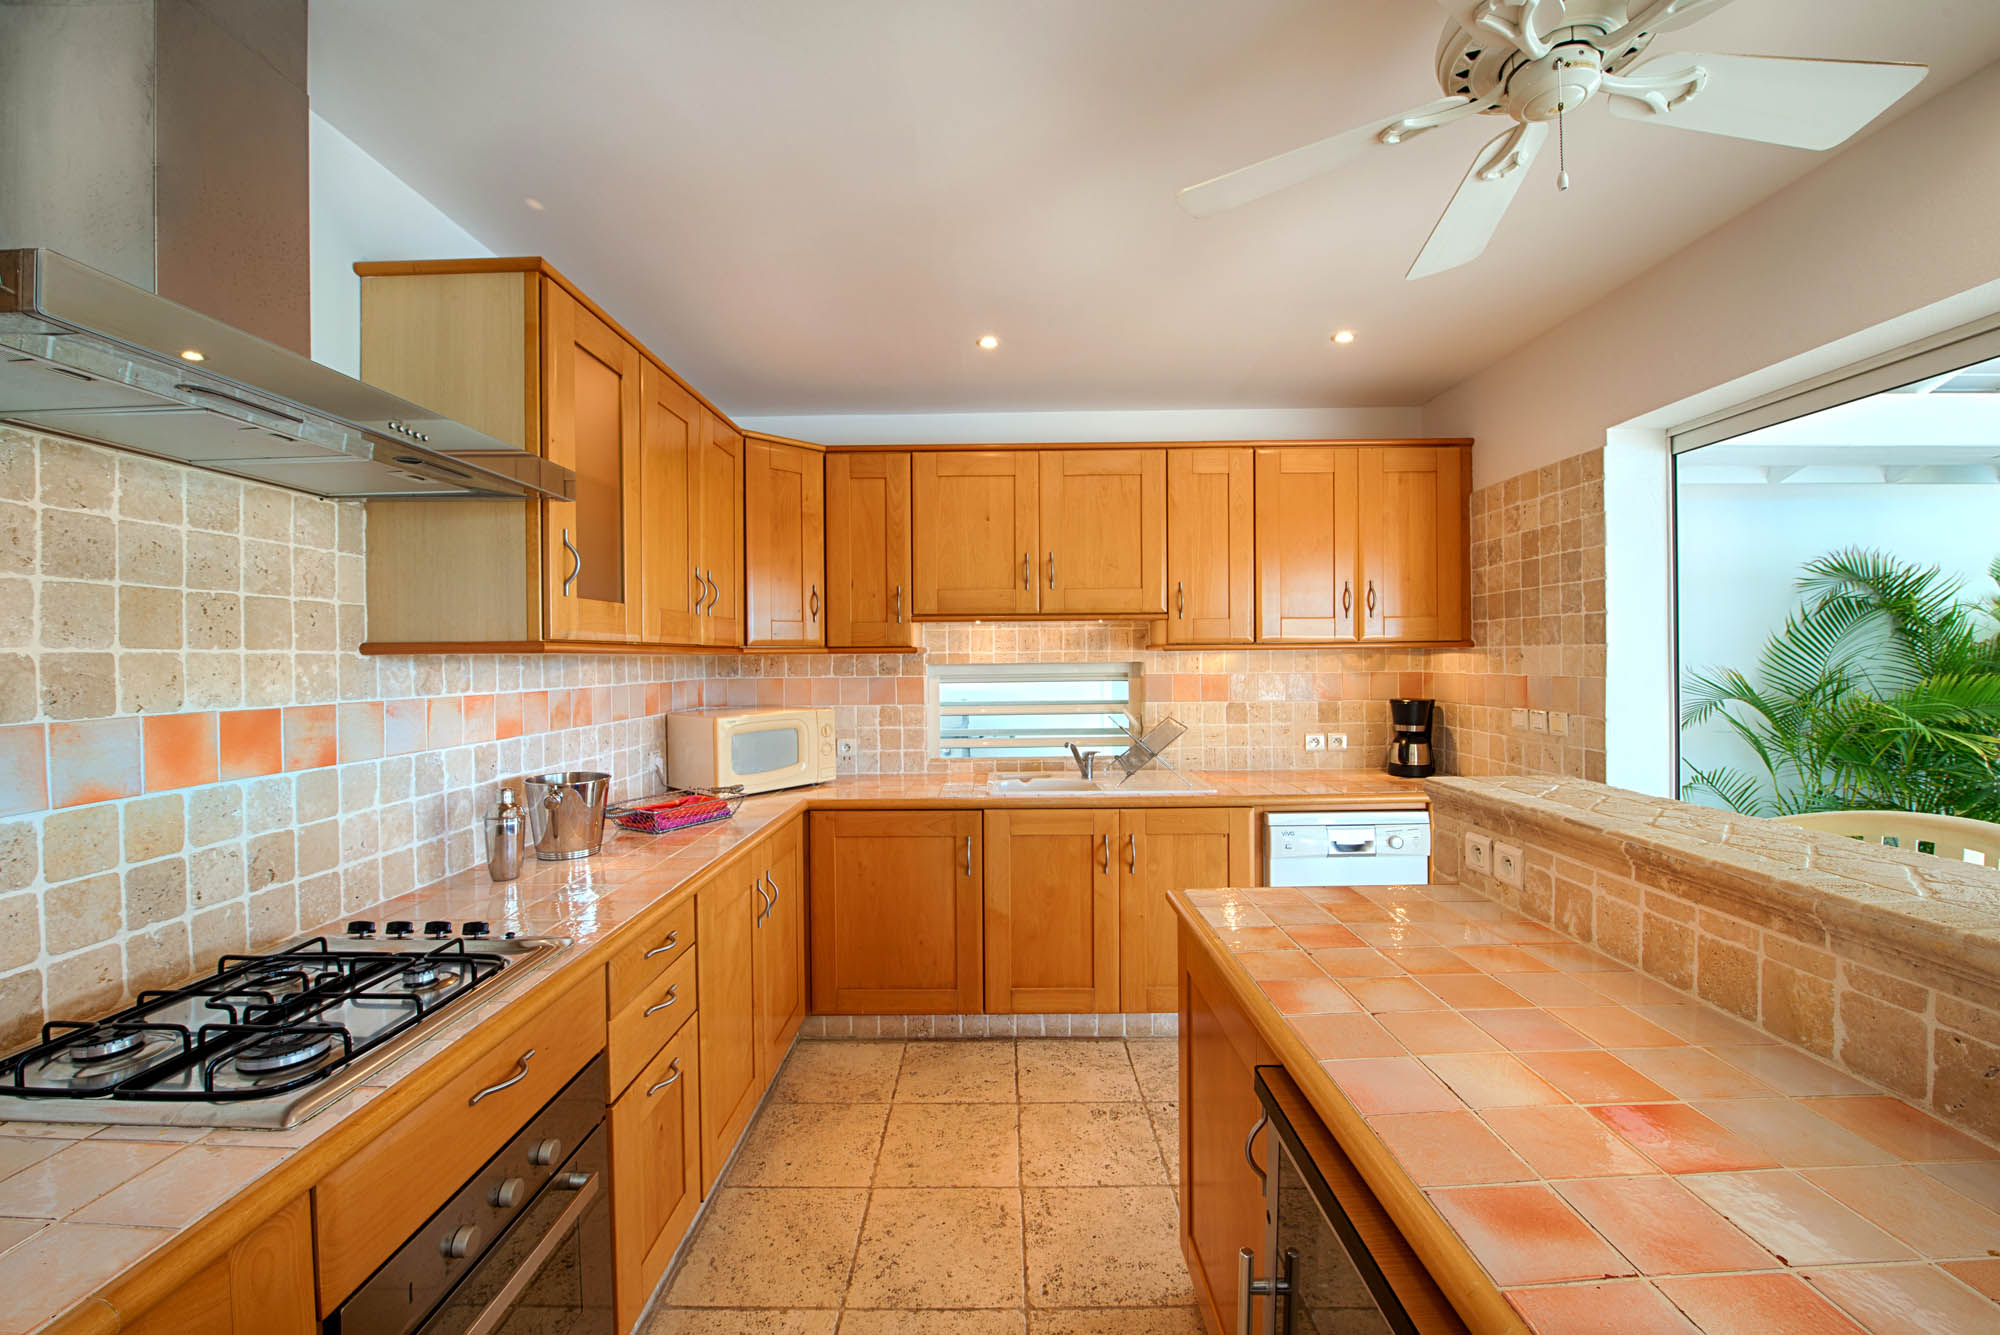 The elegant and fully equipped kitchen of Lune de Miel with everything you may need while on vacation in Saint Martin, Caribbean.